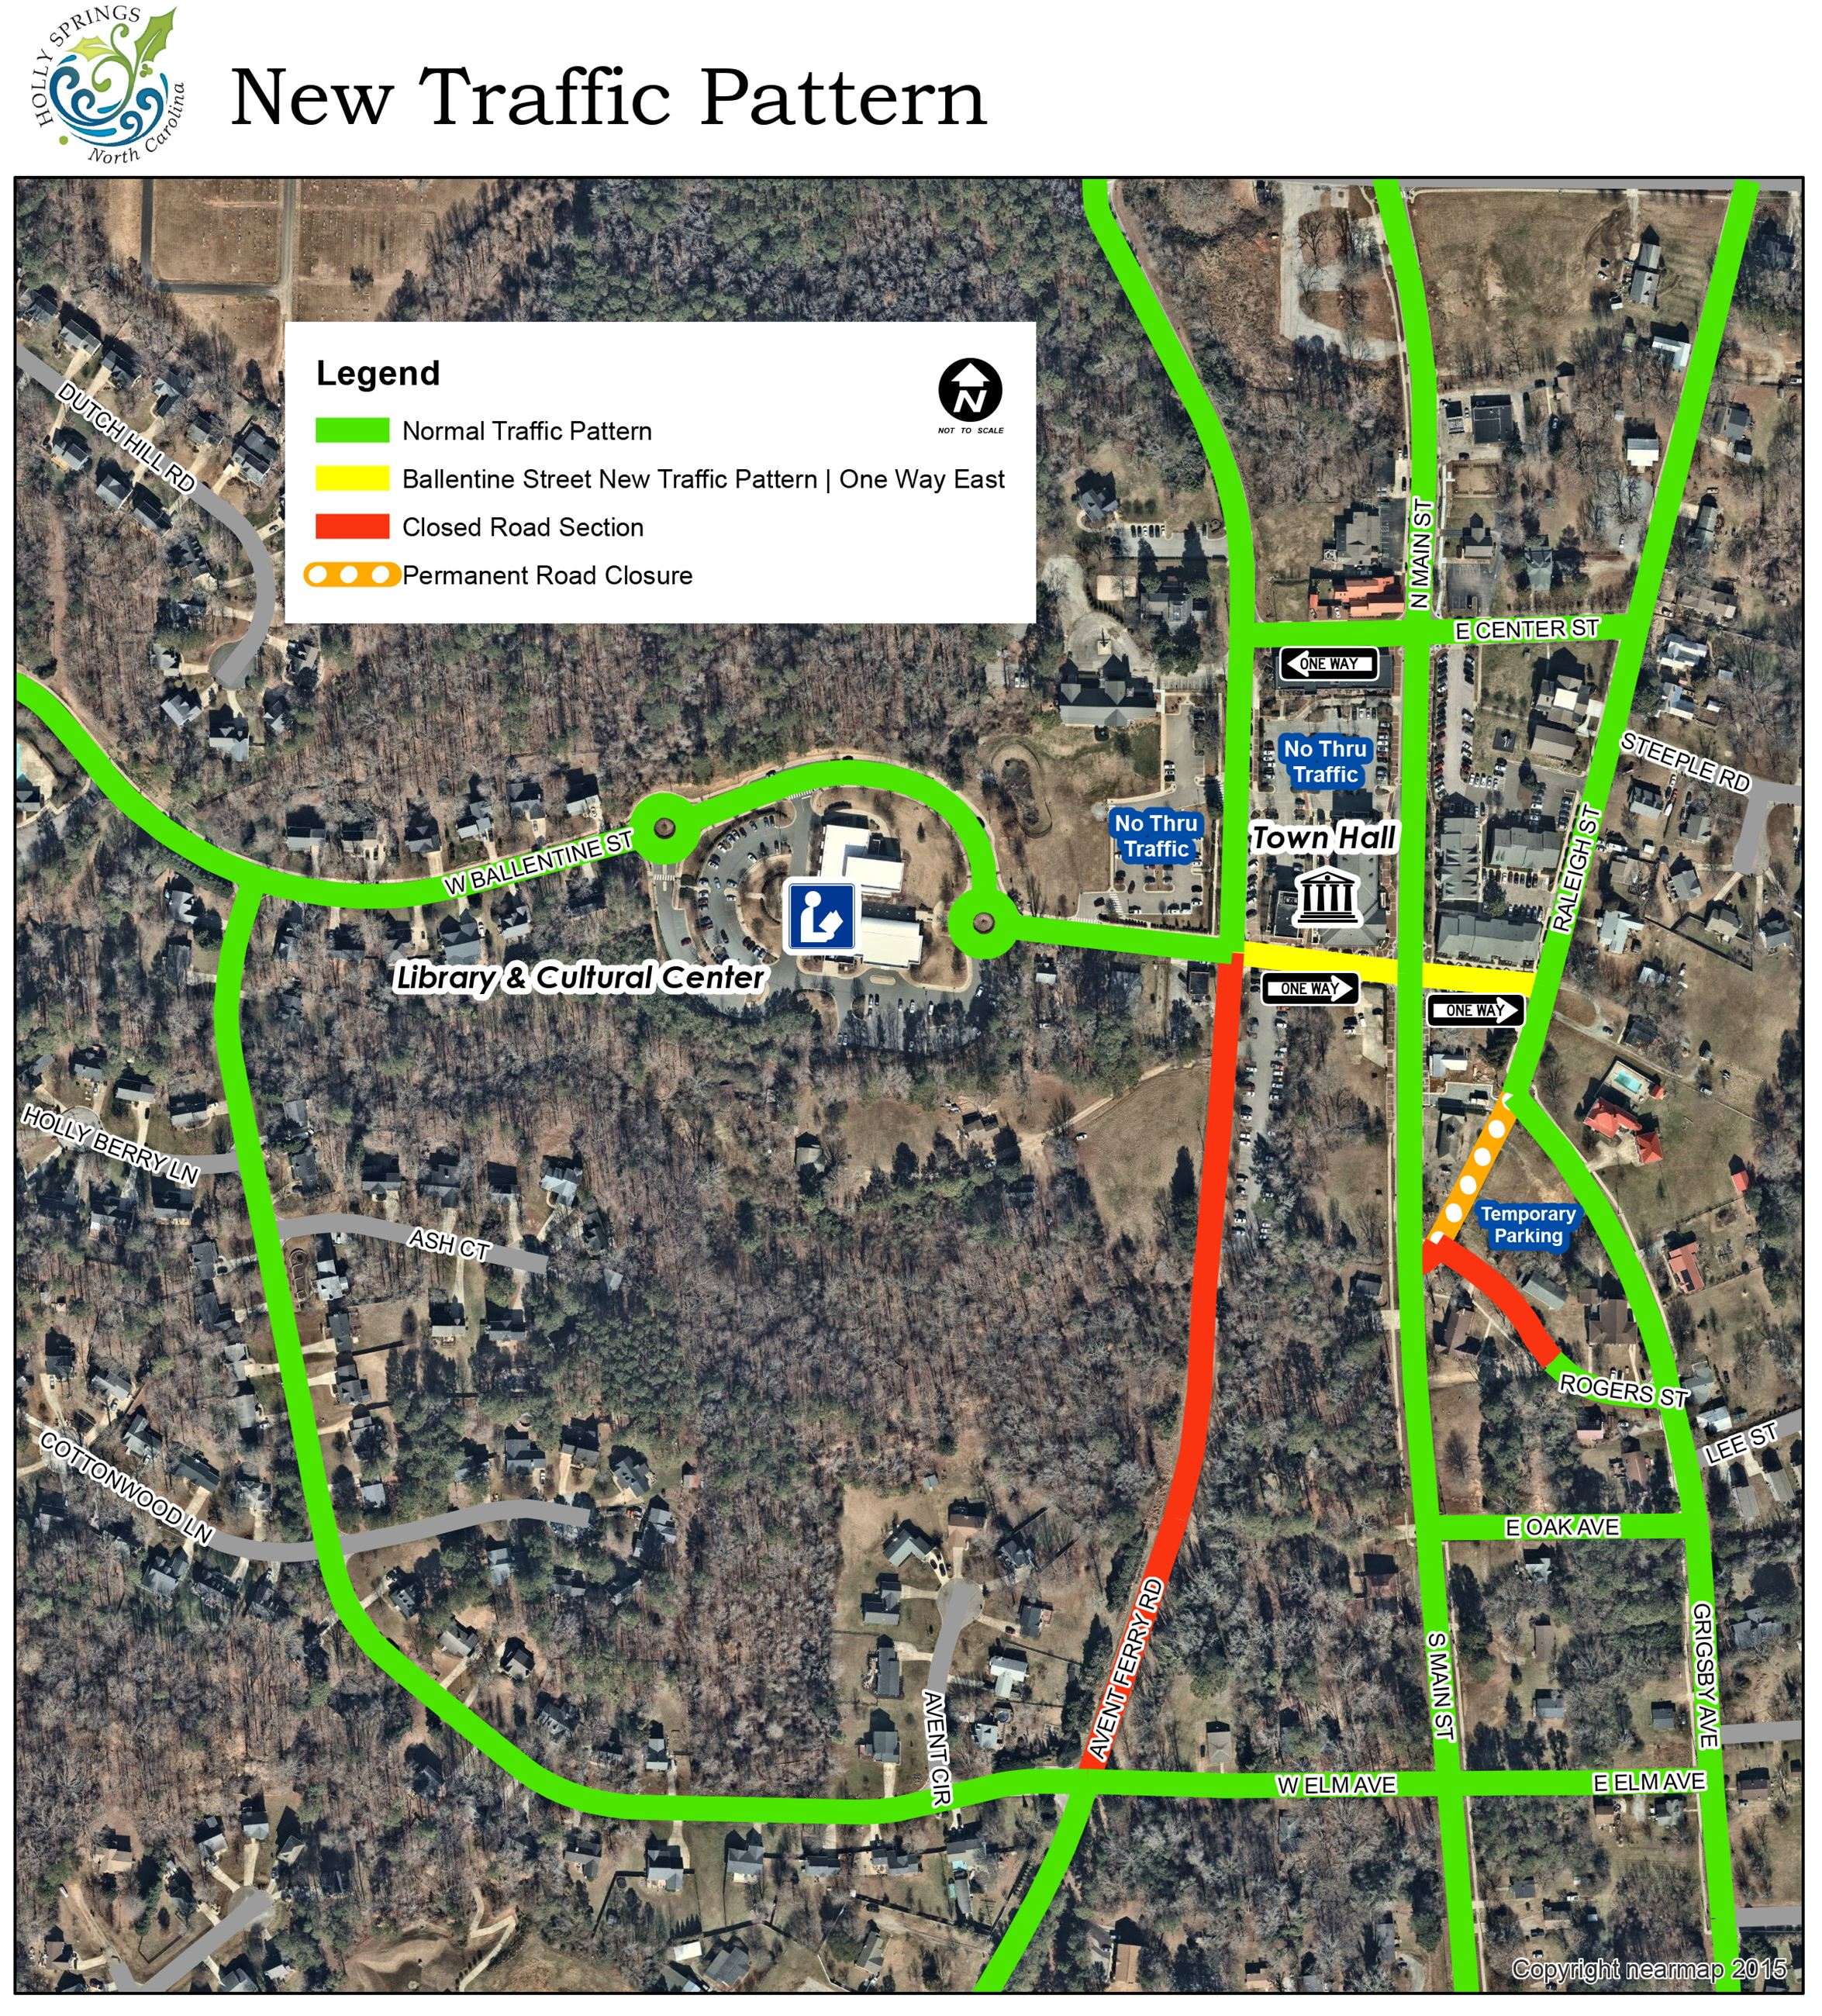 New Traffic Pattern Opens in new window